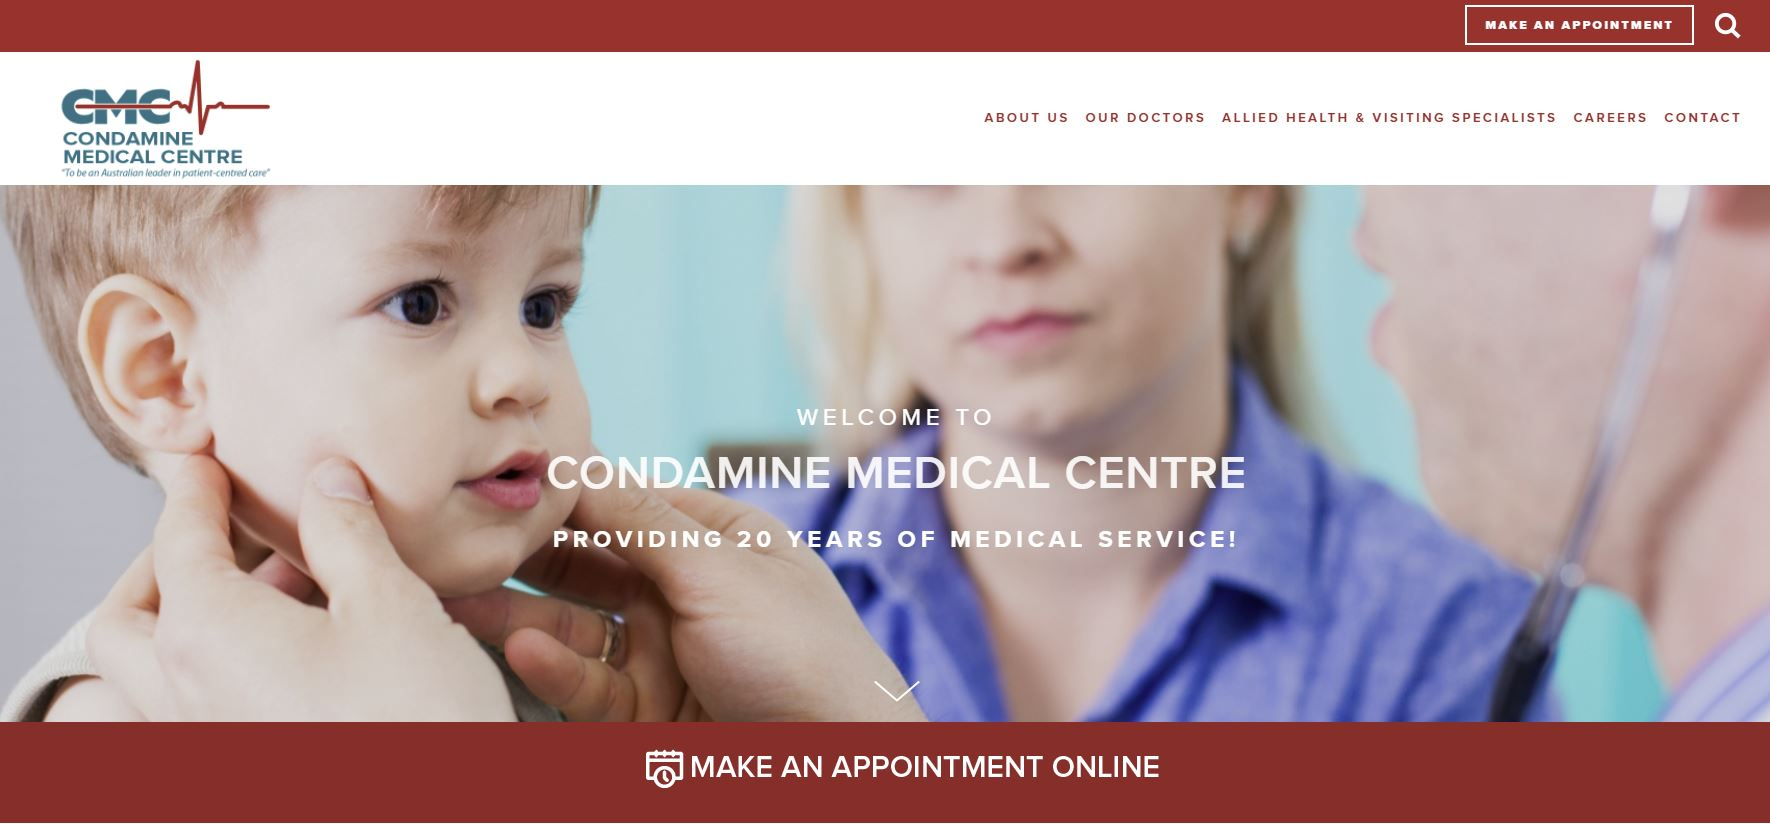 medical practice website design